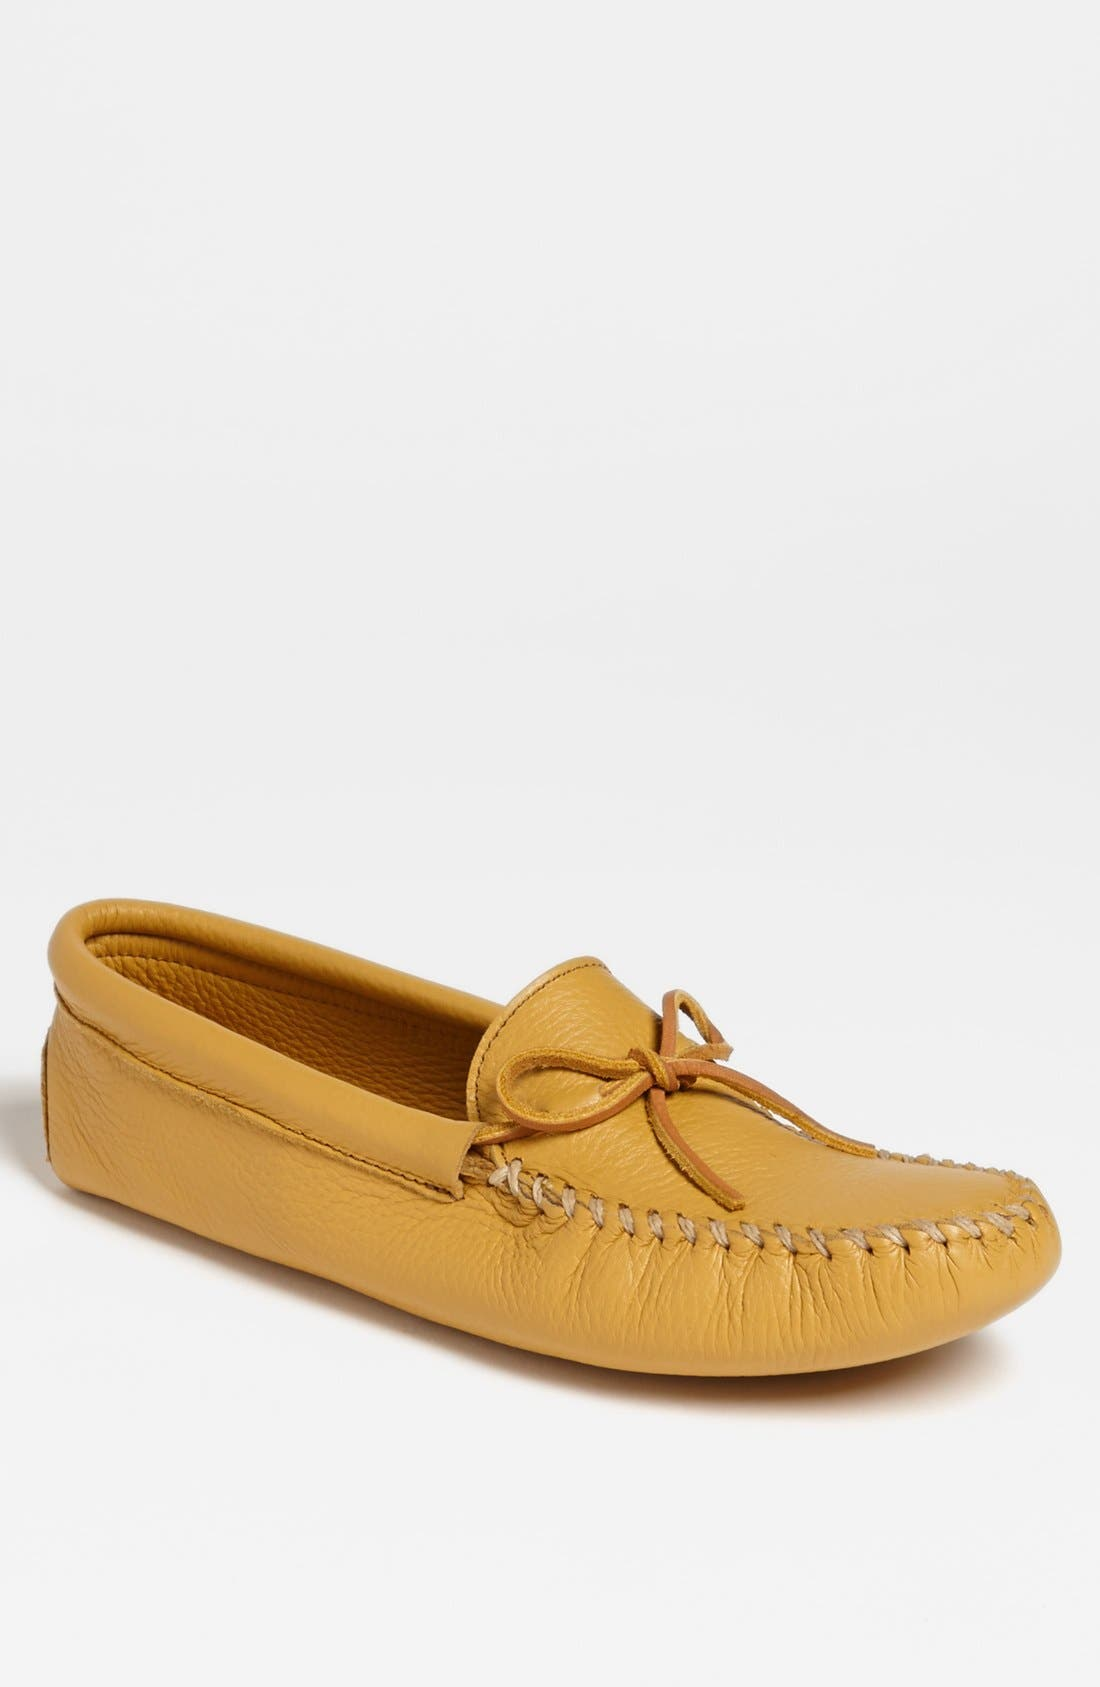 MINNETONKA, Deerskin Moccasin, Main thumbnail 1, color, NATURAL DEERSKIN